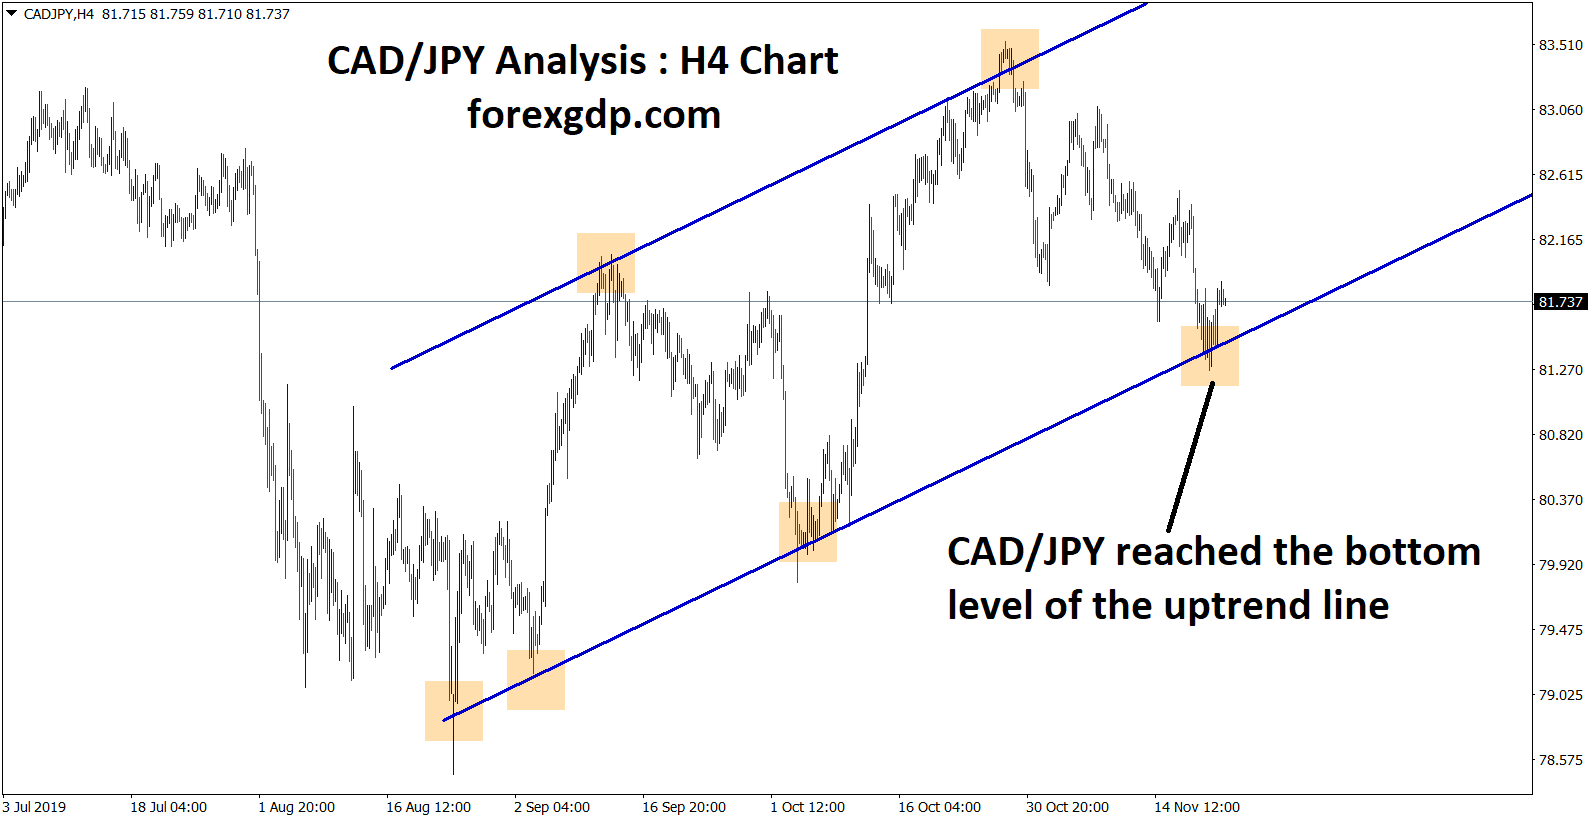 cad jpy reached the bottom level of the uptrend in H4 chart